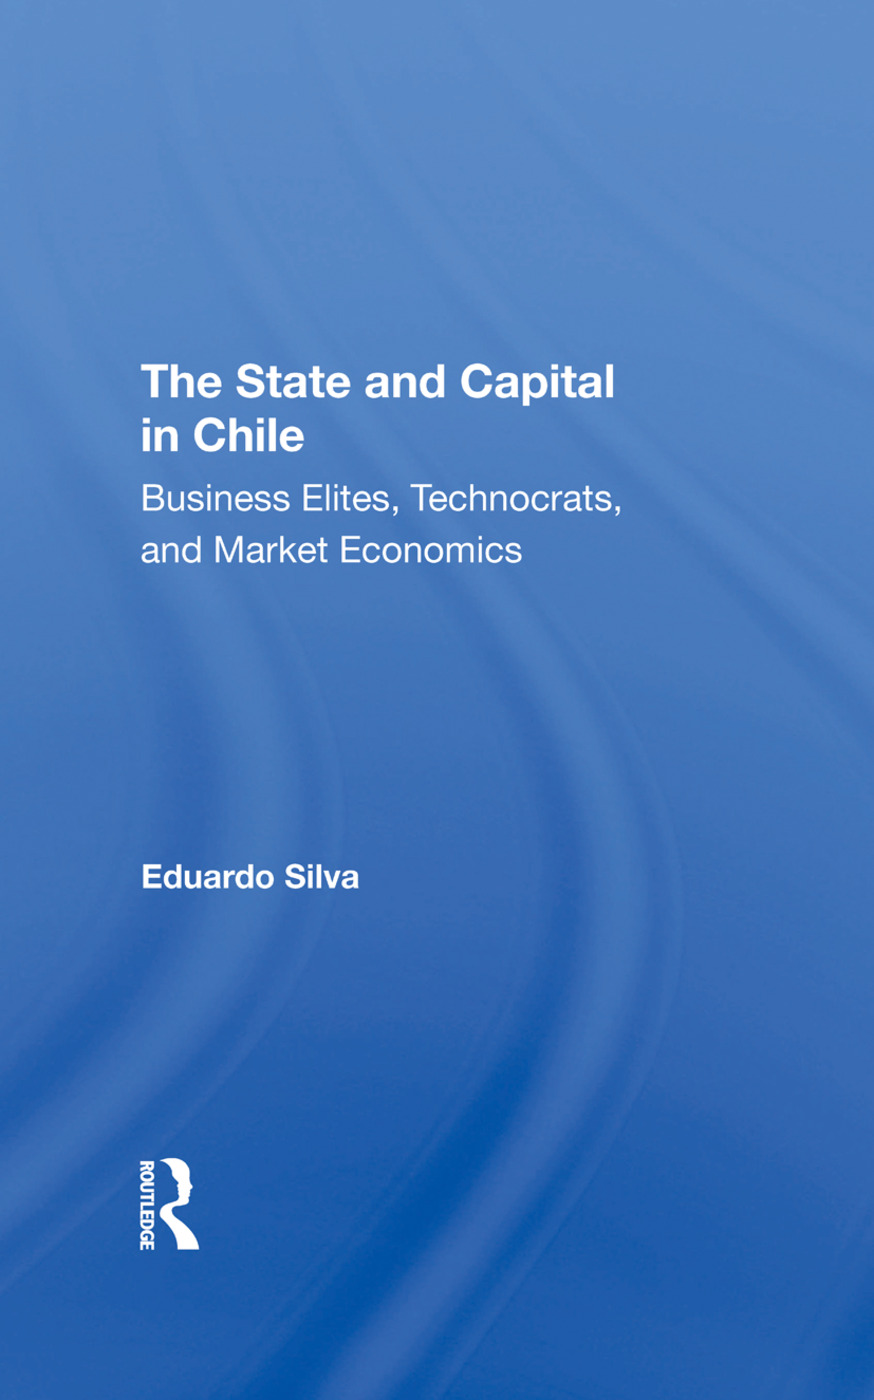 The State And Capital In Chile: Business Elites, Technocrats, And Market Economics book cover